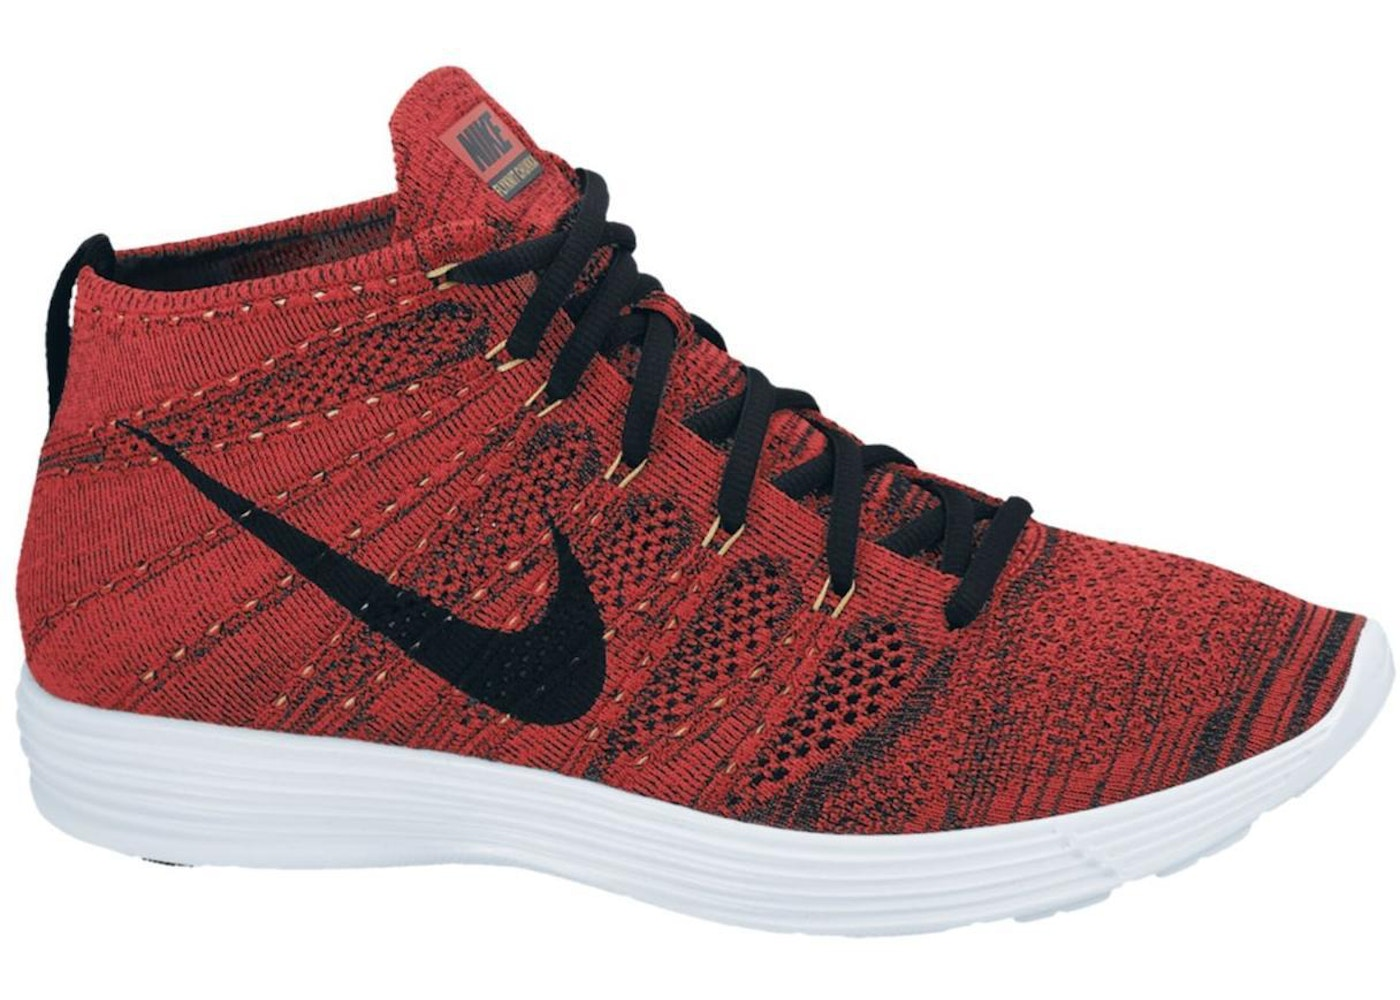 c7e8b5b20 Nike Lunar Flyknit Chukka University Red Metallic Gold - 554969-671